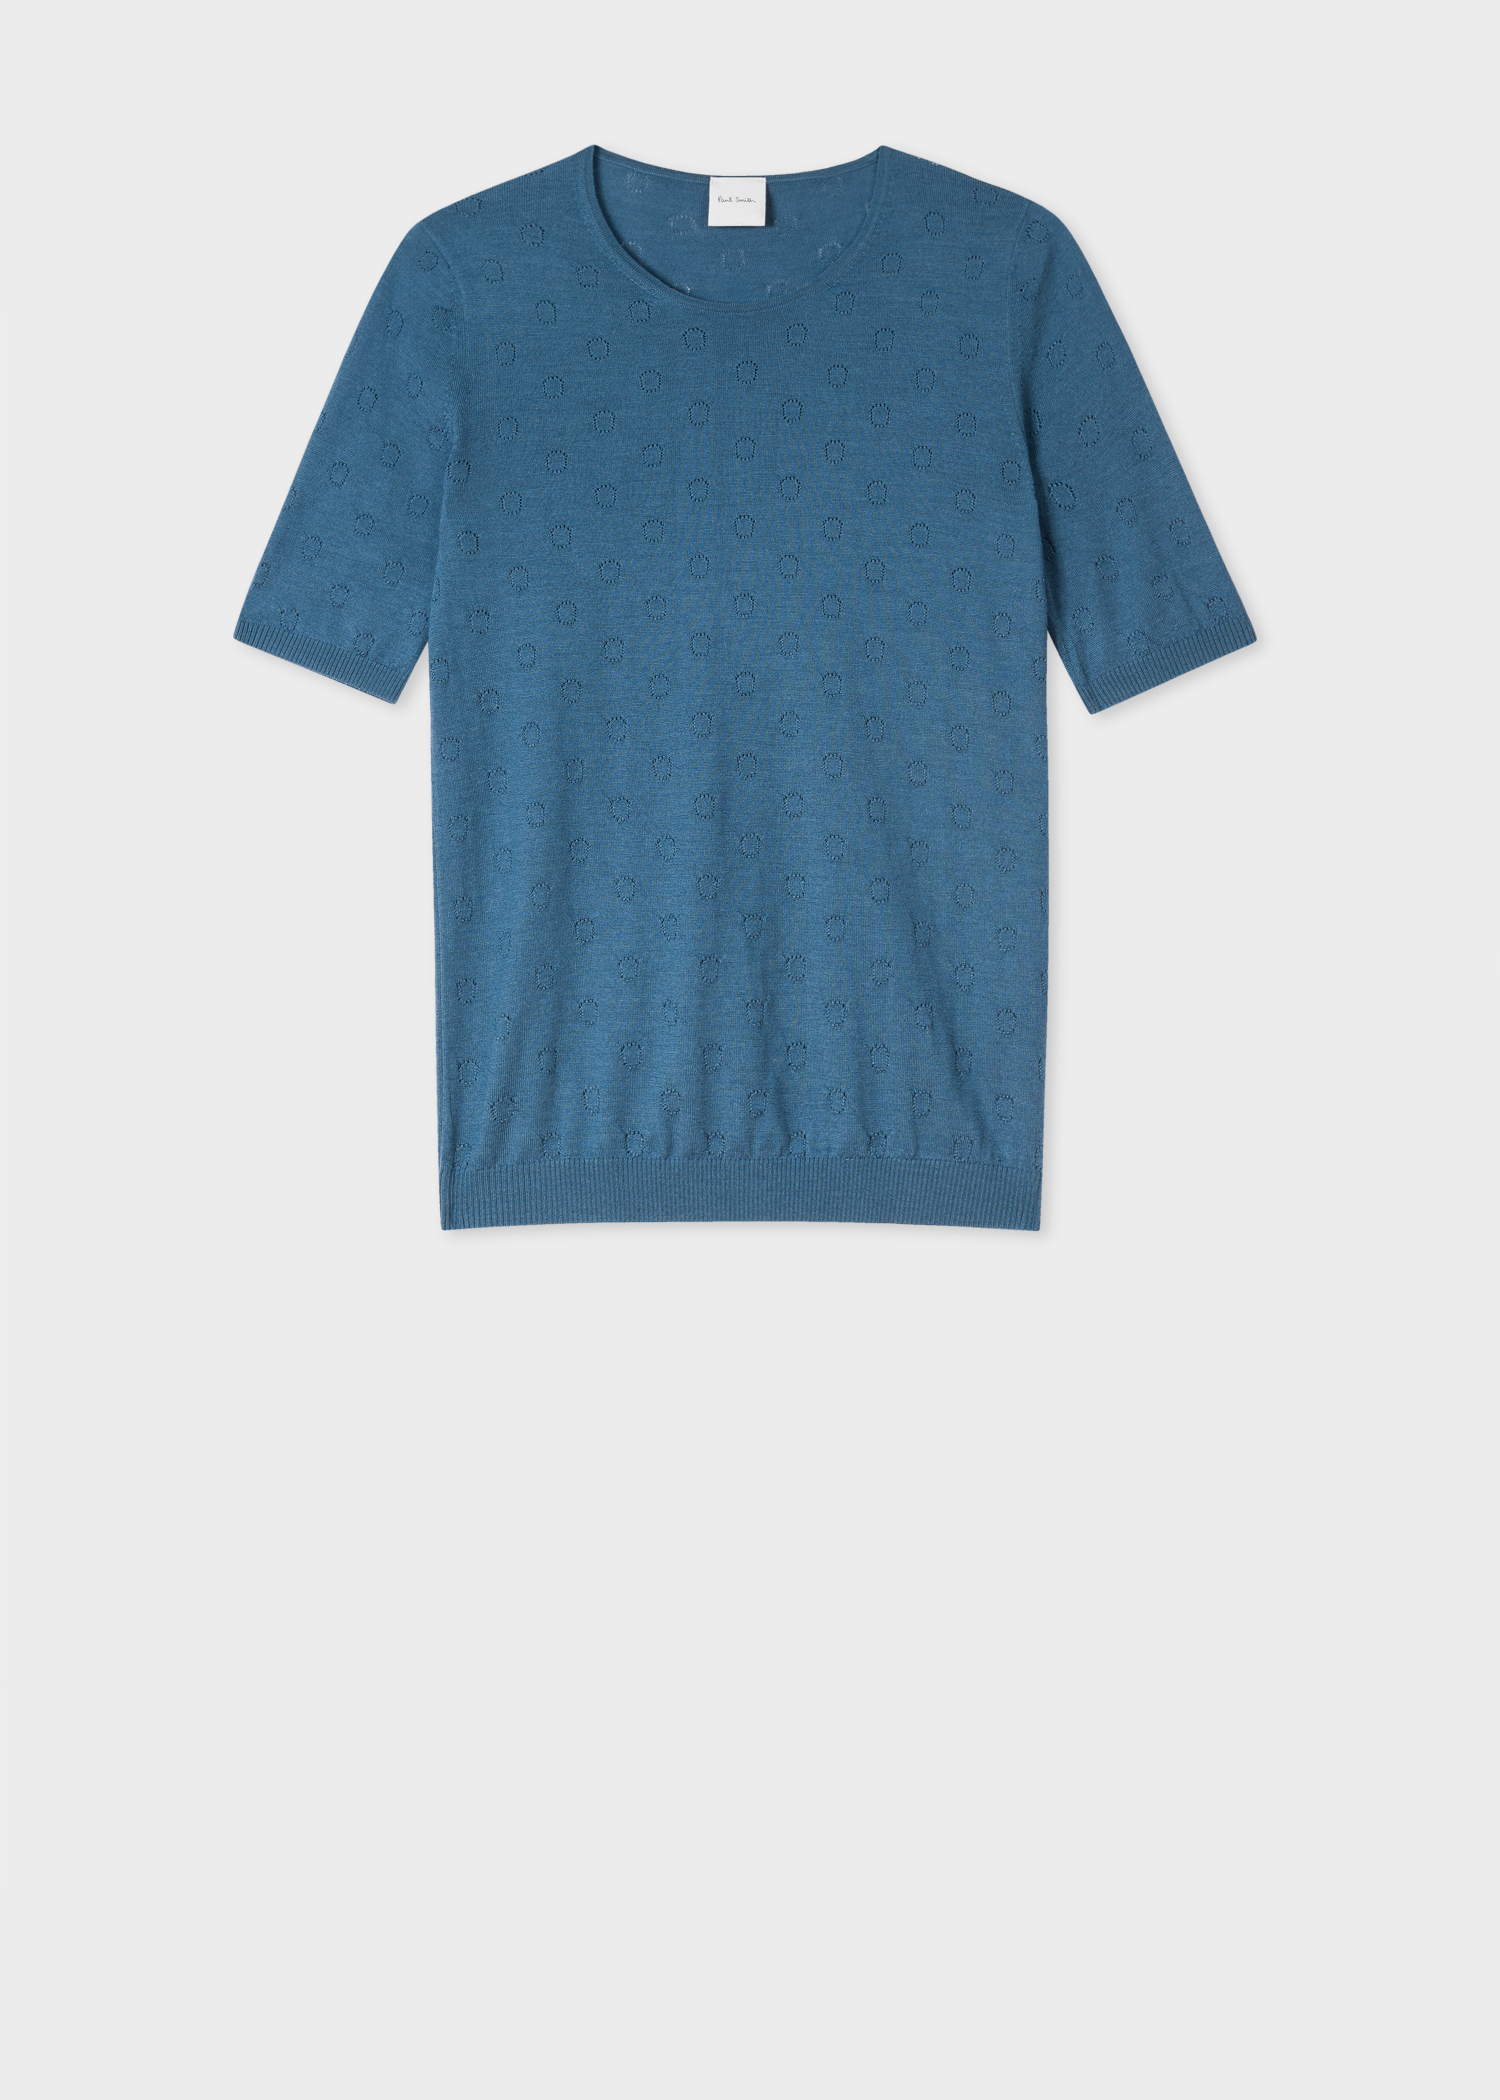 9aa9be6bc92 Women's Petrol Merino Wool And Silk-Blend Knitted T-Shirt Paul Smith